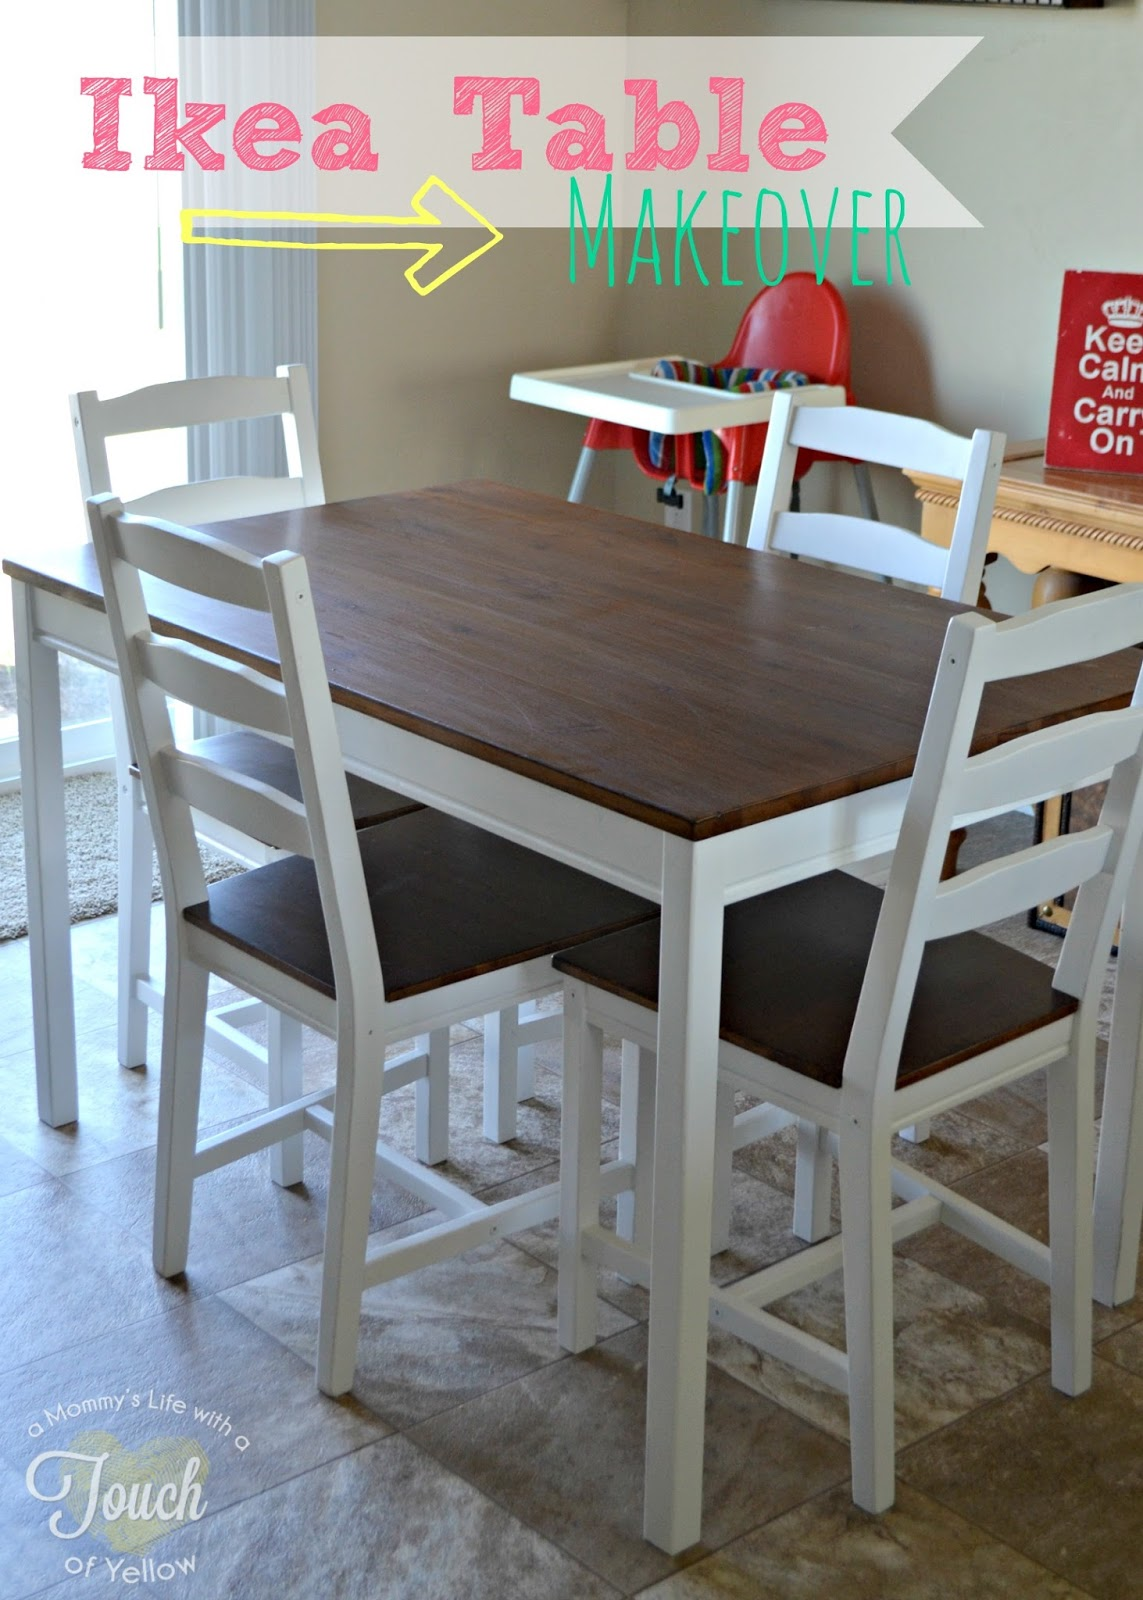 Ikea dining room 2013 - Ikea Kitchen Table Makeover Tutorial